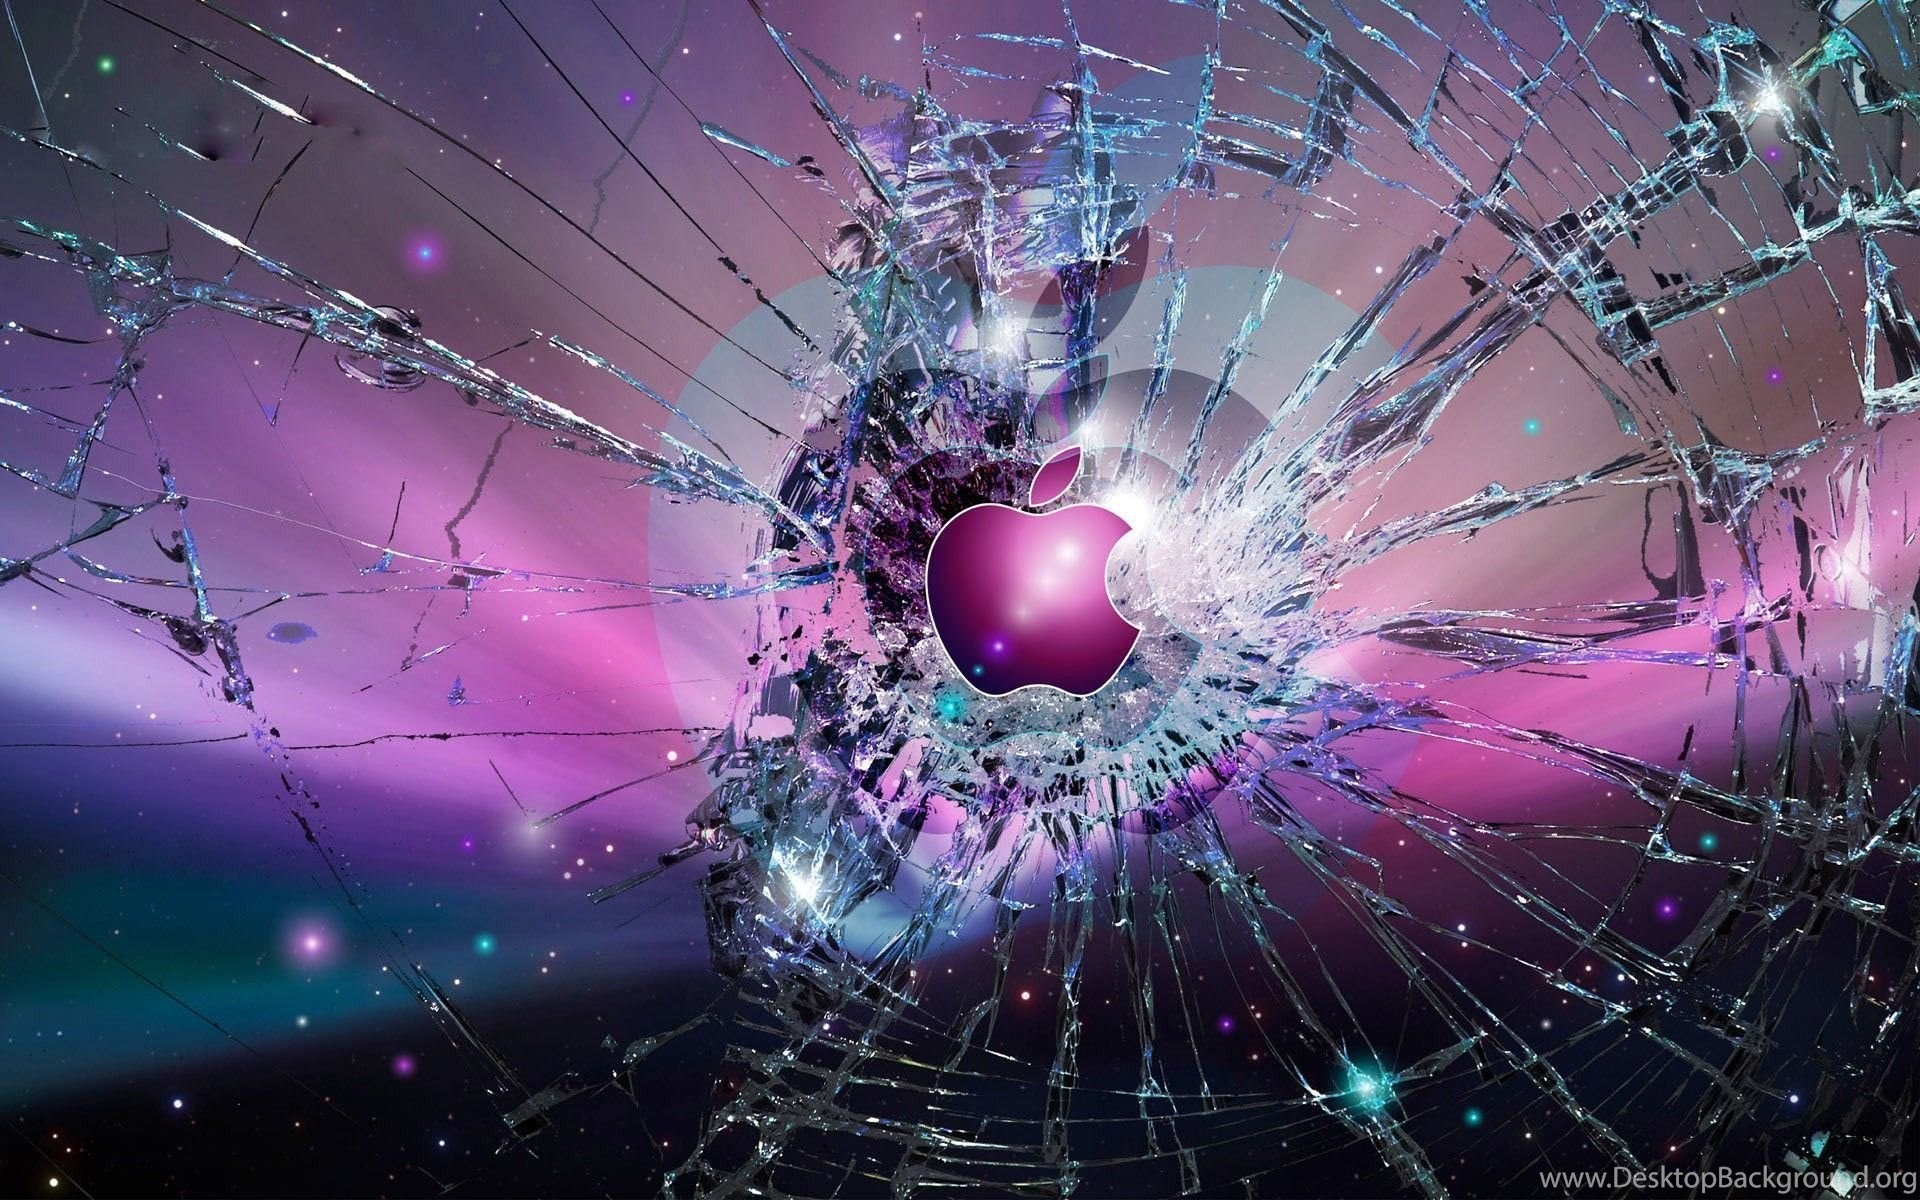 apple monitor crash mac background wallpaper hd computer 1200x1920